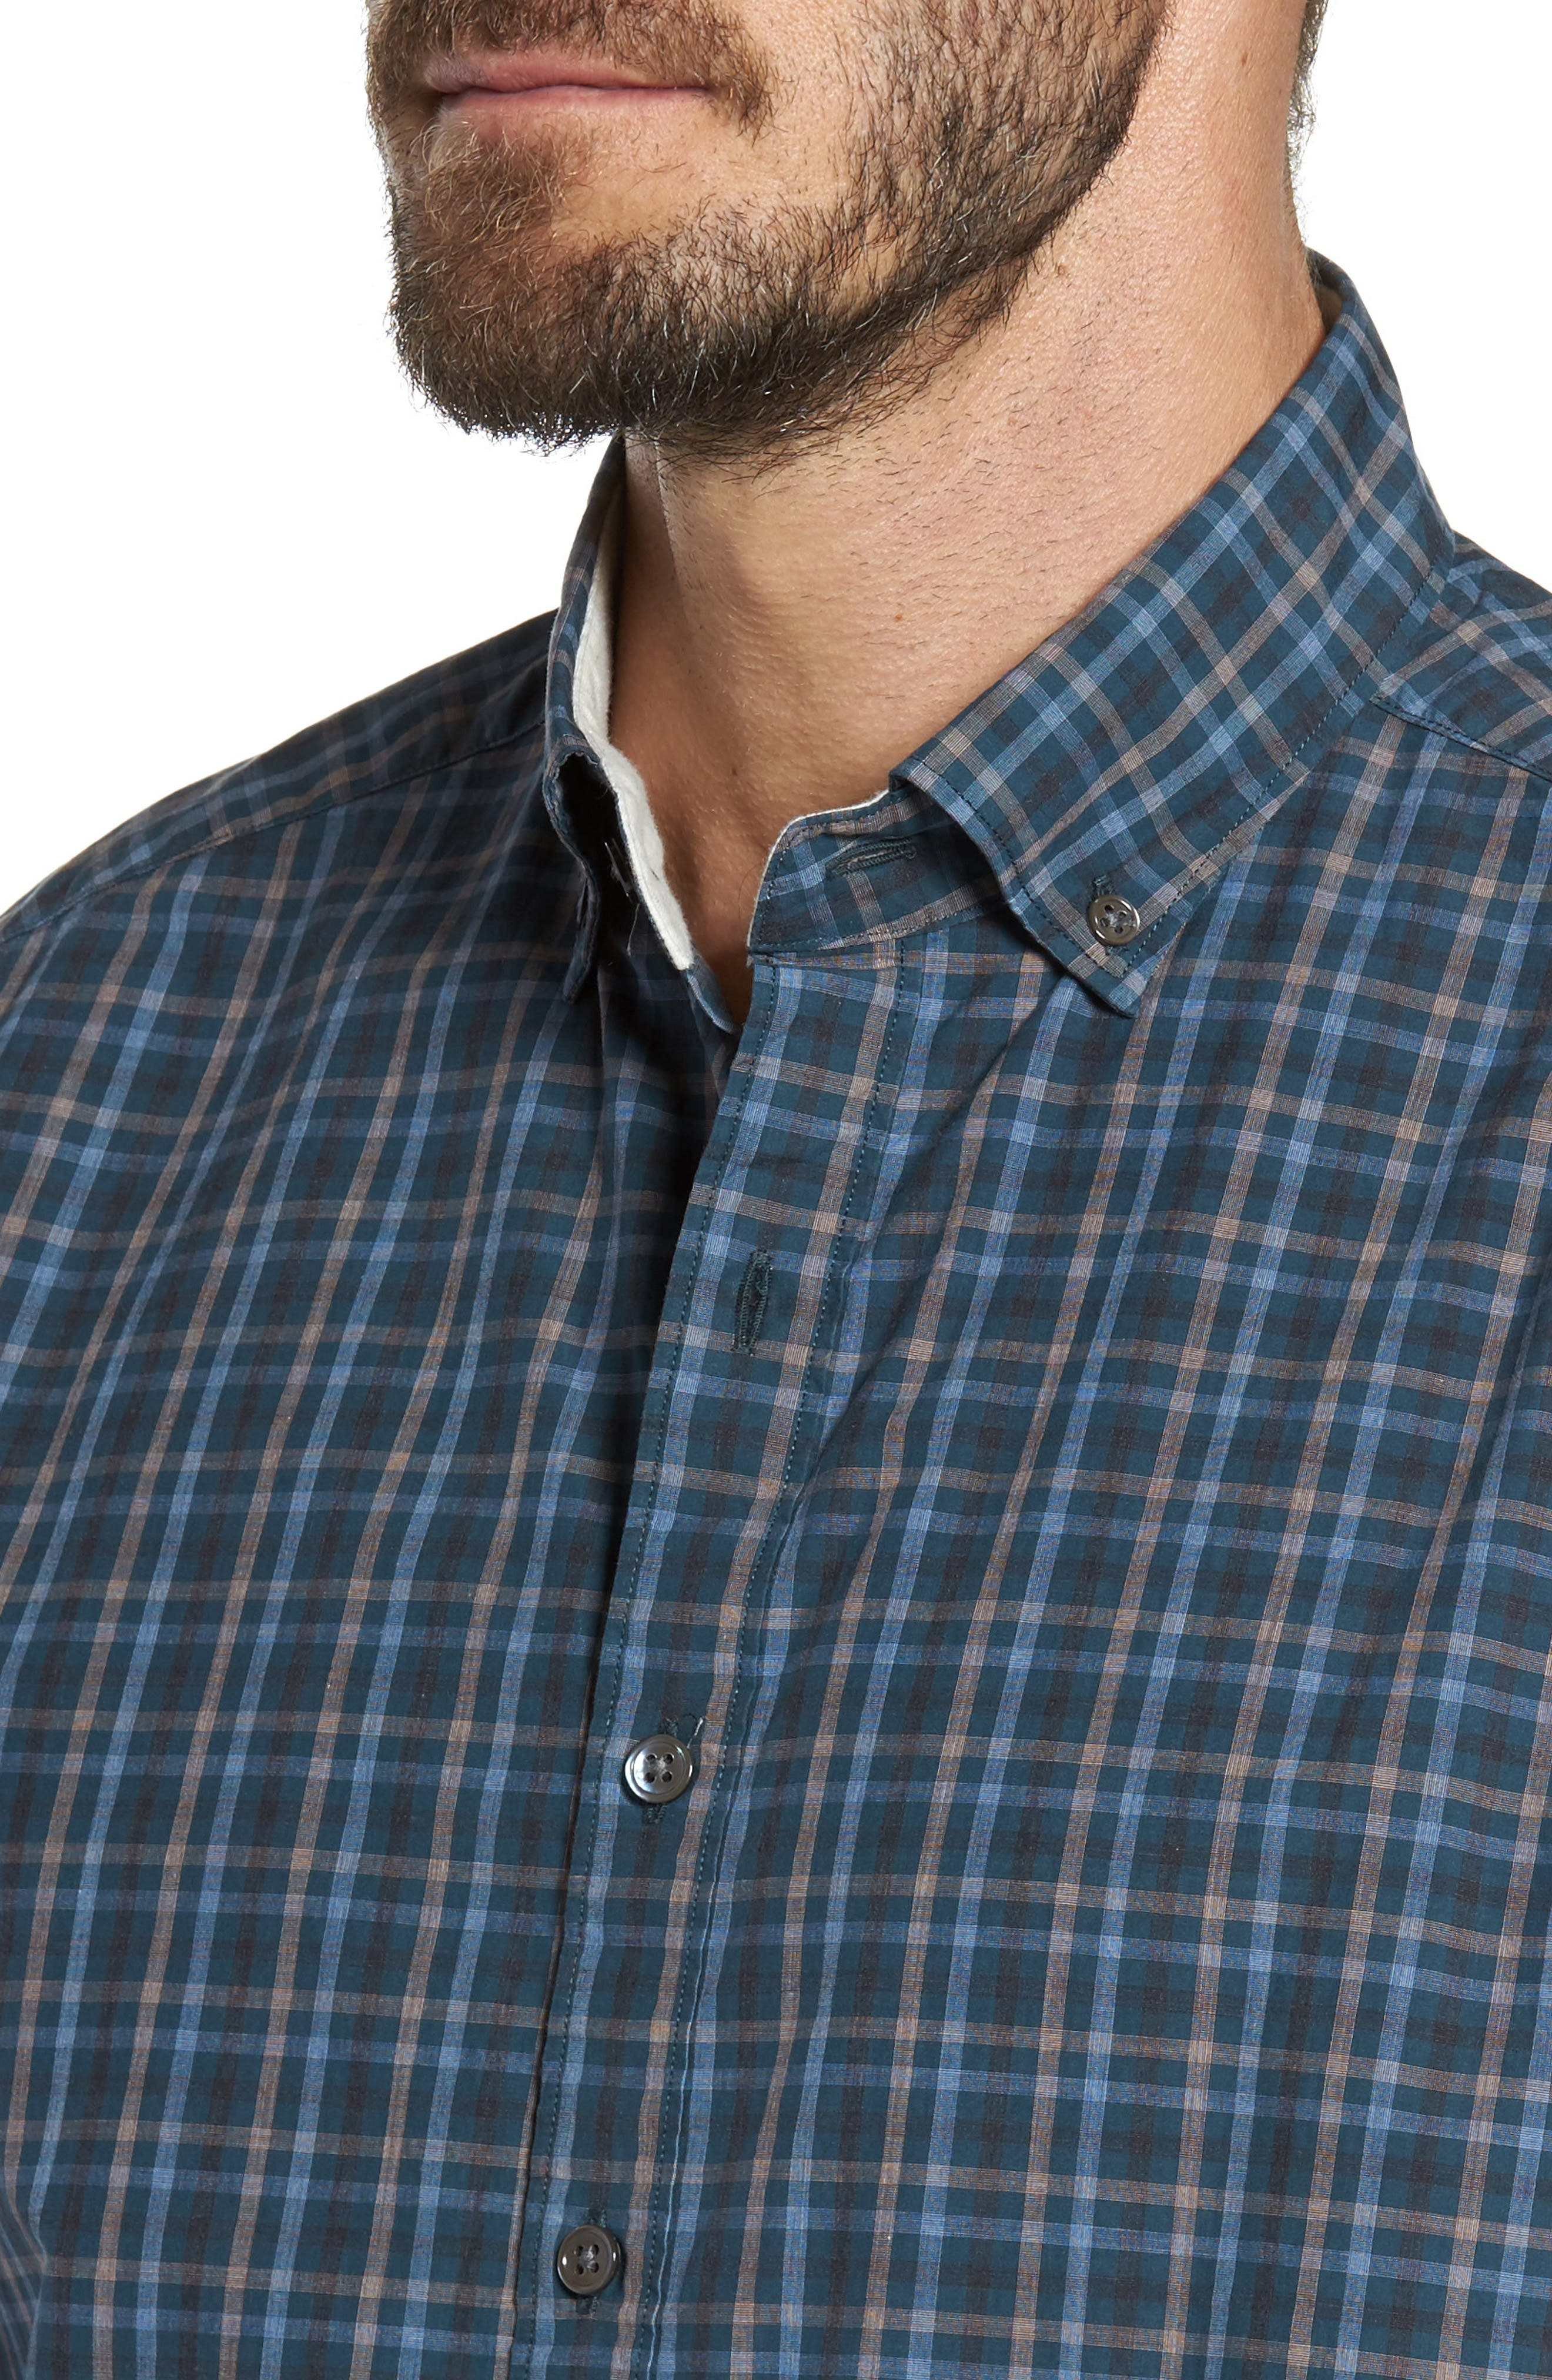 Rock and Pillar Check Sport Shirt,                             Alternate thumbnail 4, color,                             Forest